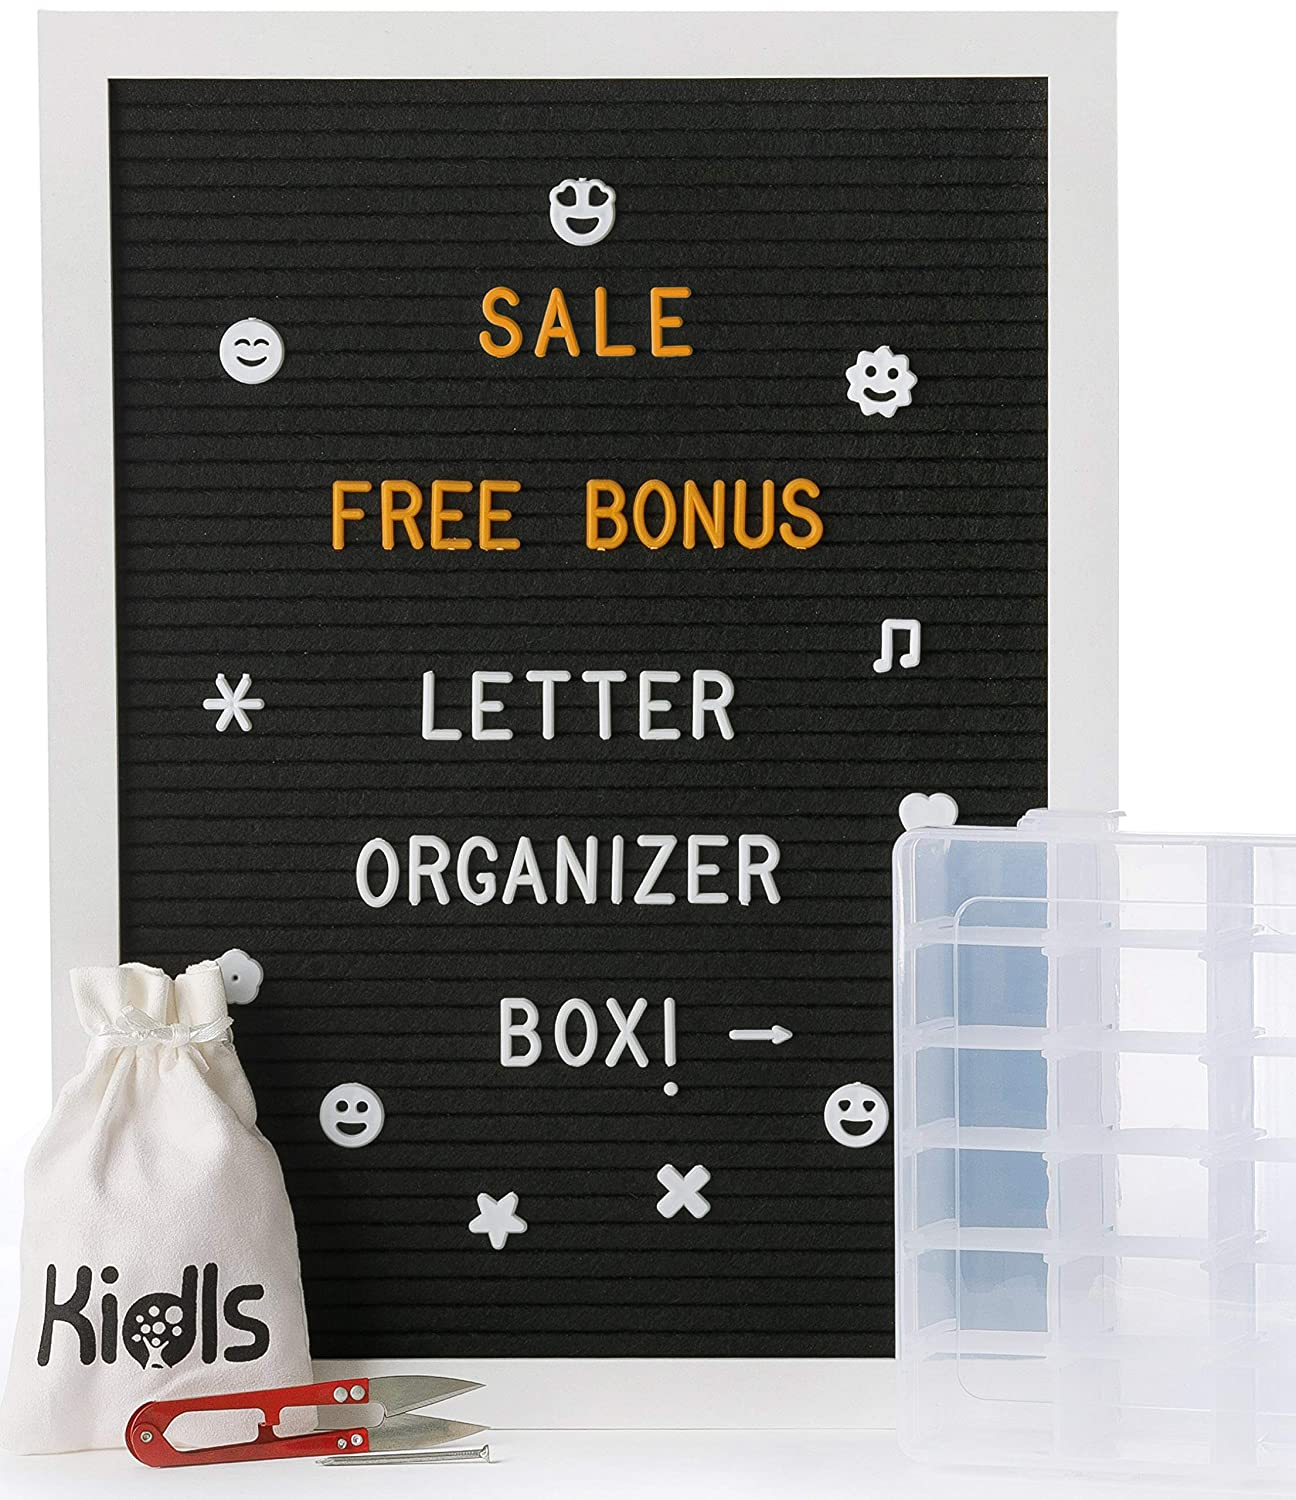 Felt Letter Board – 12x16 White Wood Frame with 750 Changeable Letters, Numbers, and Emojis – Message Board Sign + FREE BONUS: Organizer Box and Scissors - Black Magnet-Tech